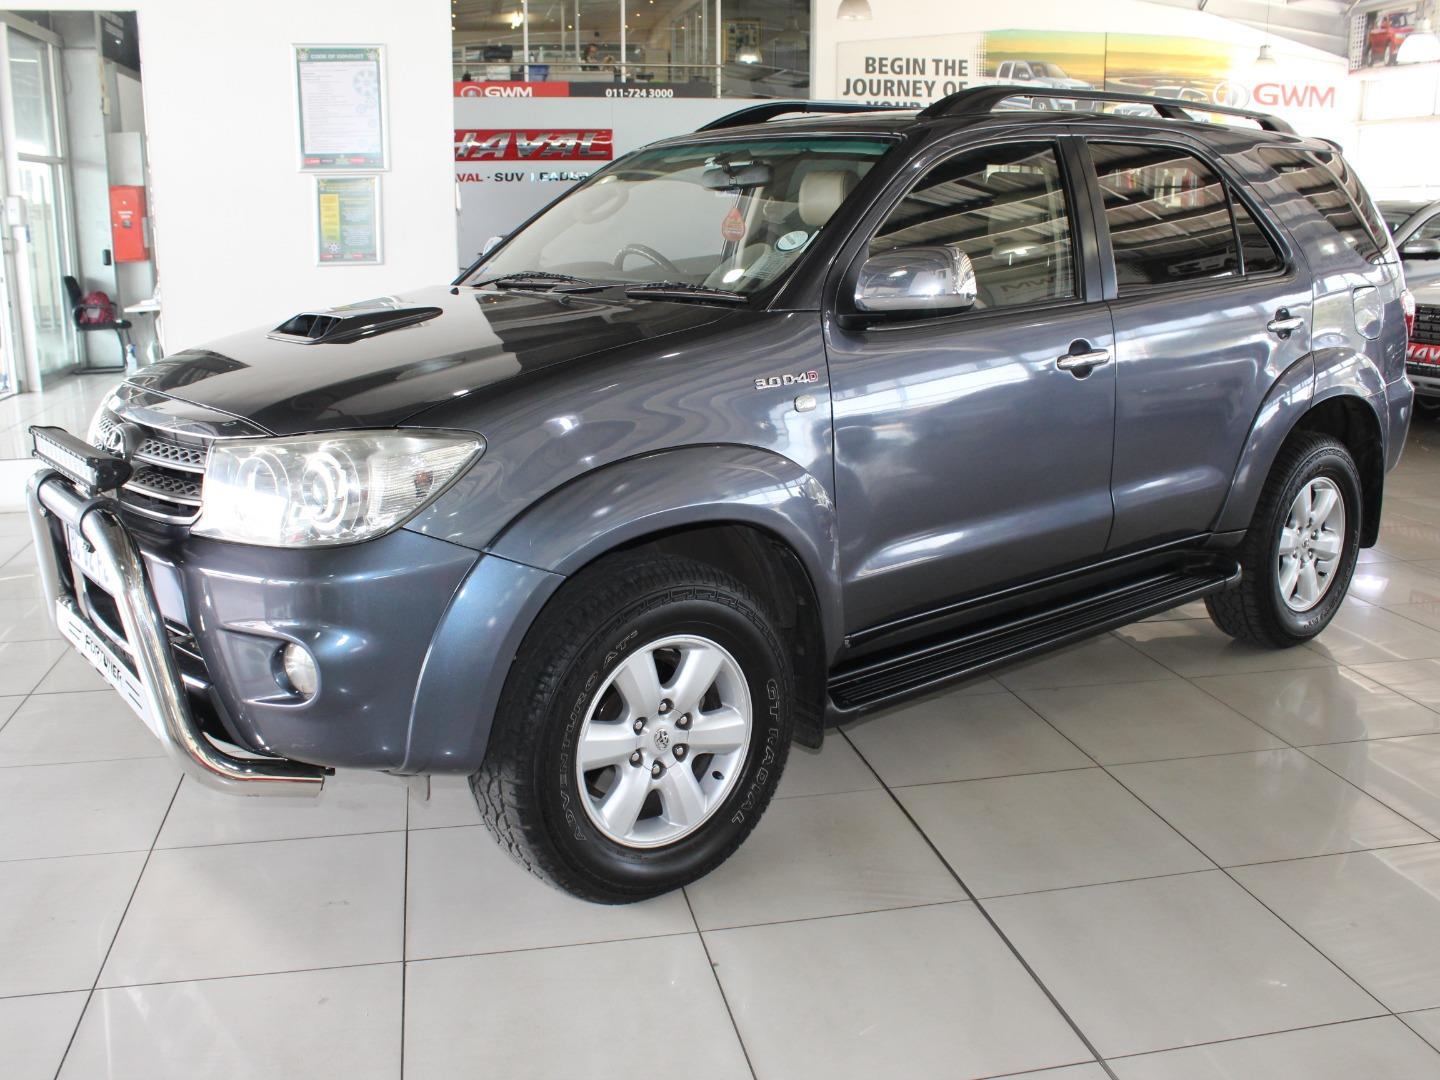 2011 Toyota Fortuner 3.0D-4D Auto- Picture 8